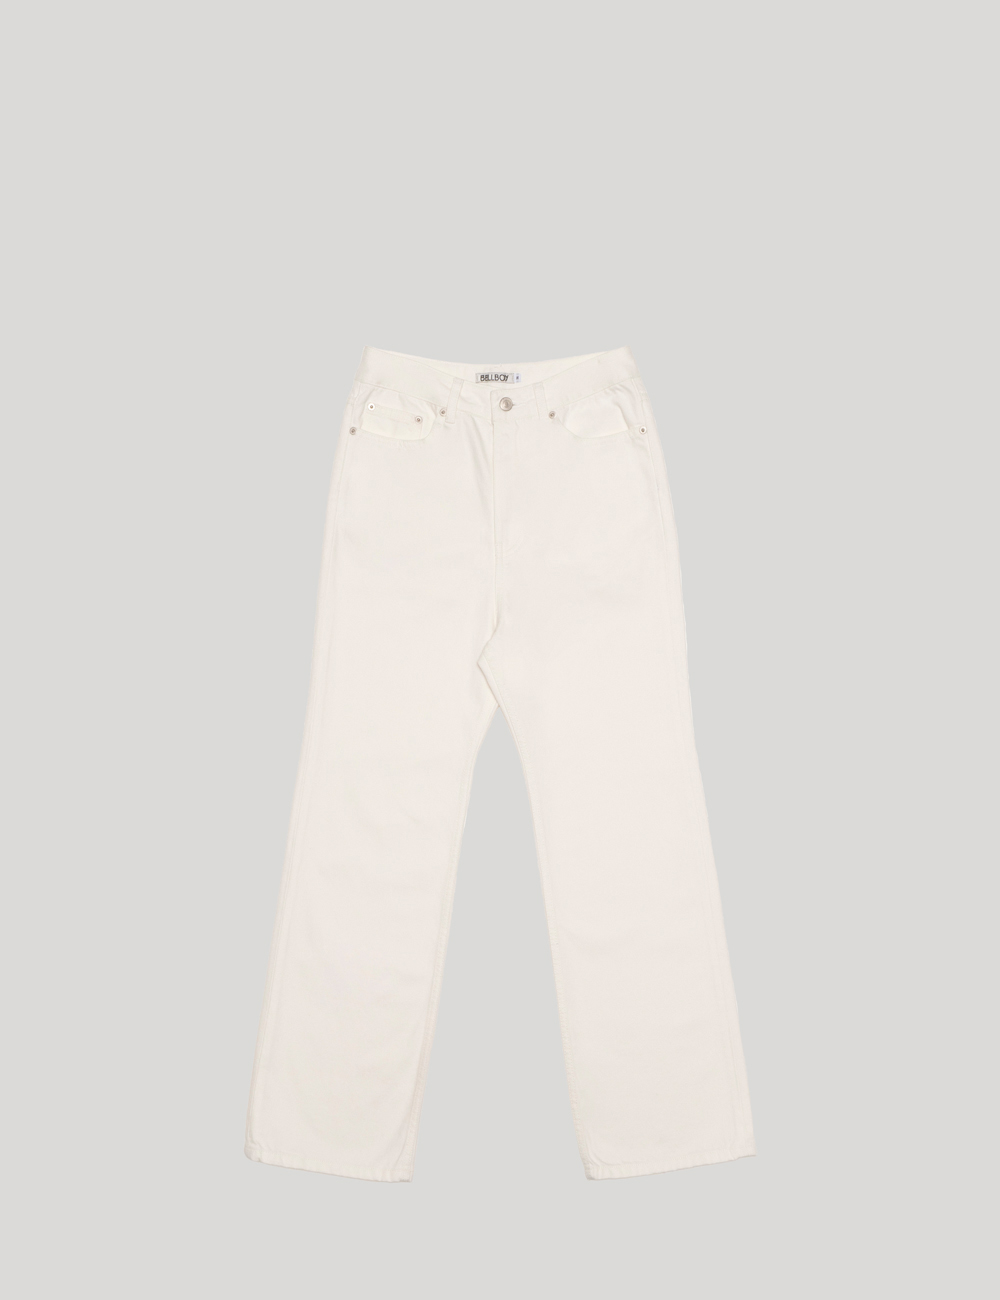 WOMEN'S<br>LOOSE BOOTCUT